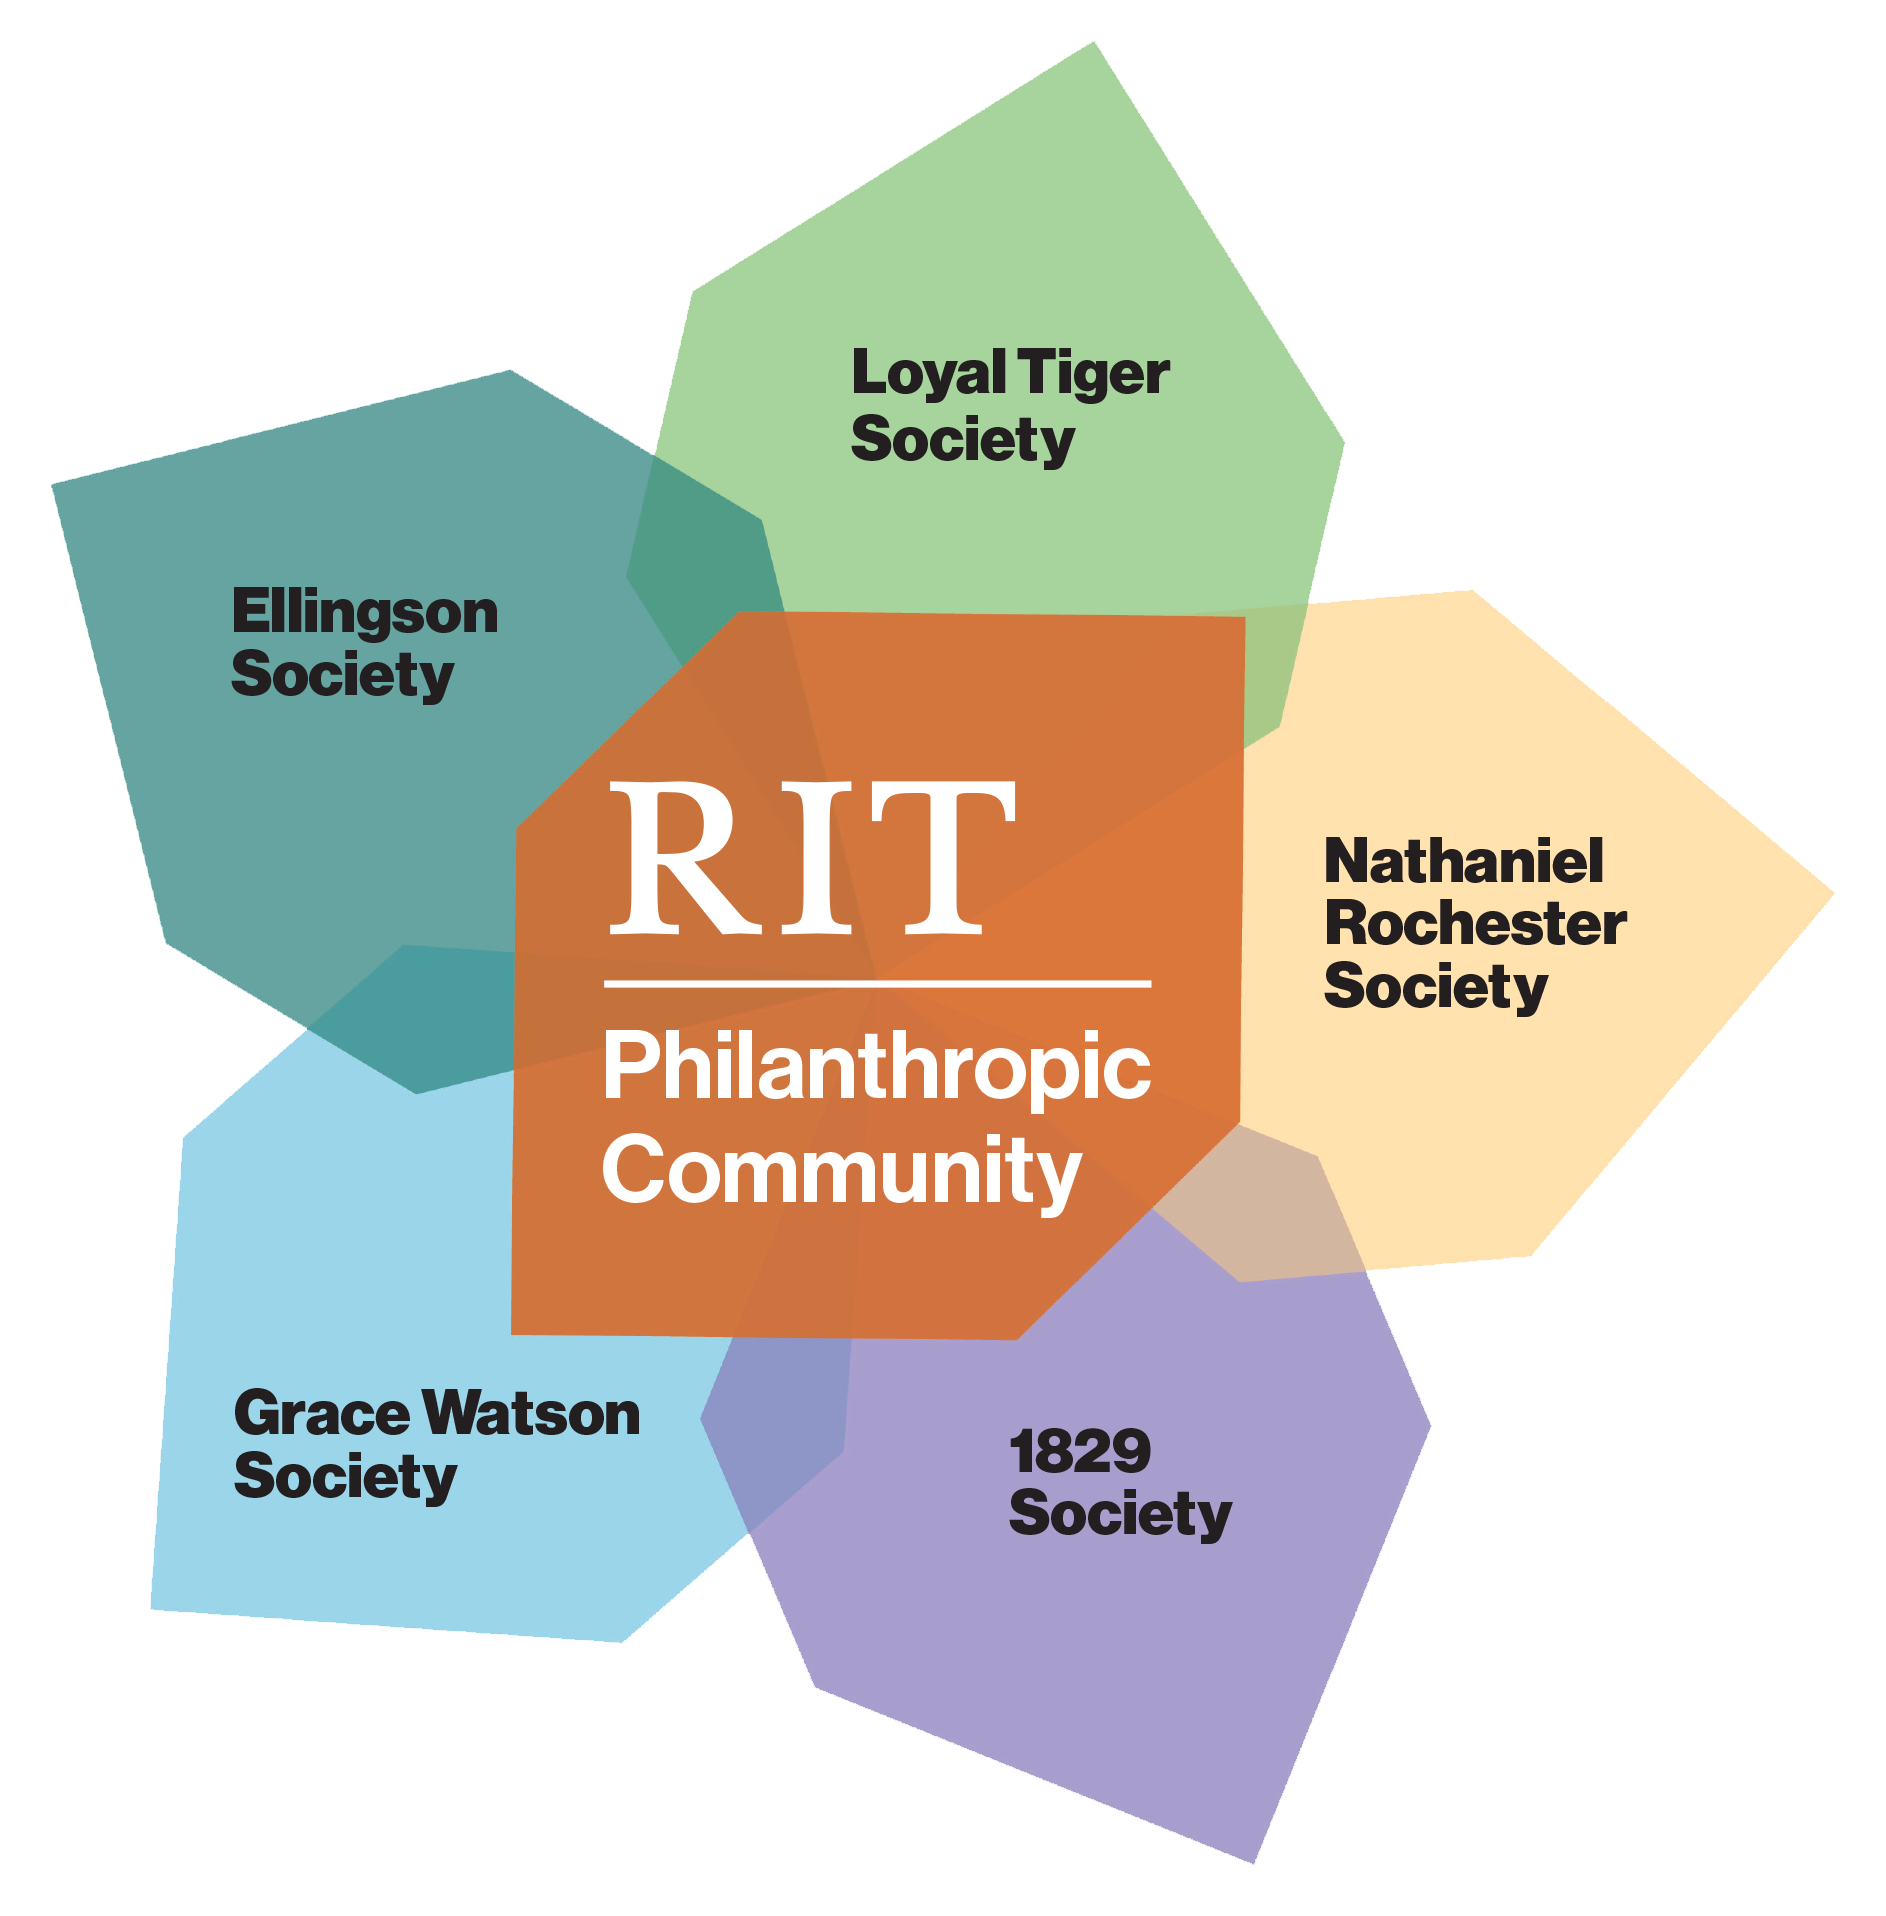 RIT Philanthropic community: Loyal Tiger Society, Nathaniel Rochester Society, 1829 Society, Grace Watson Society, Ellingson Society